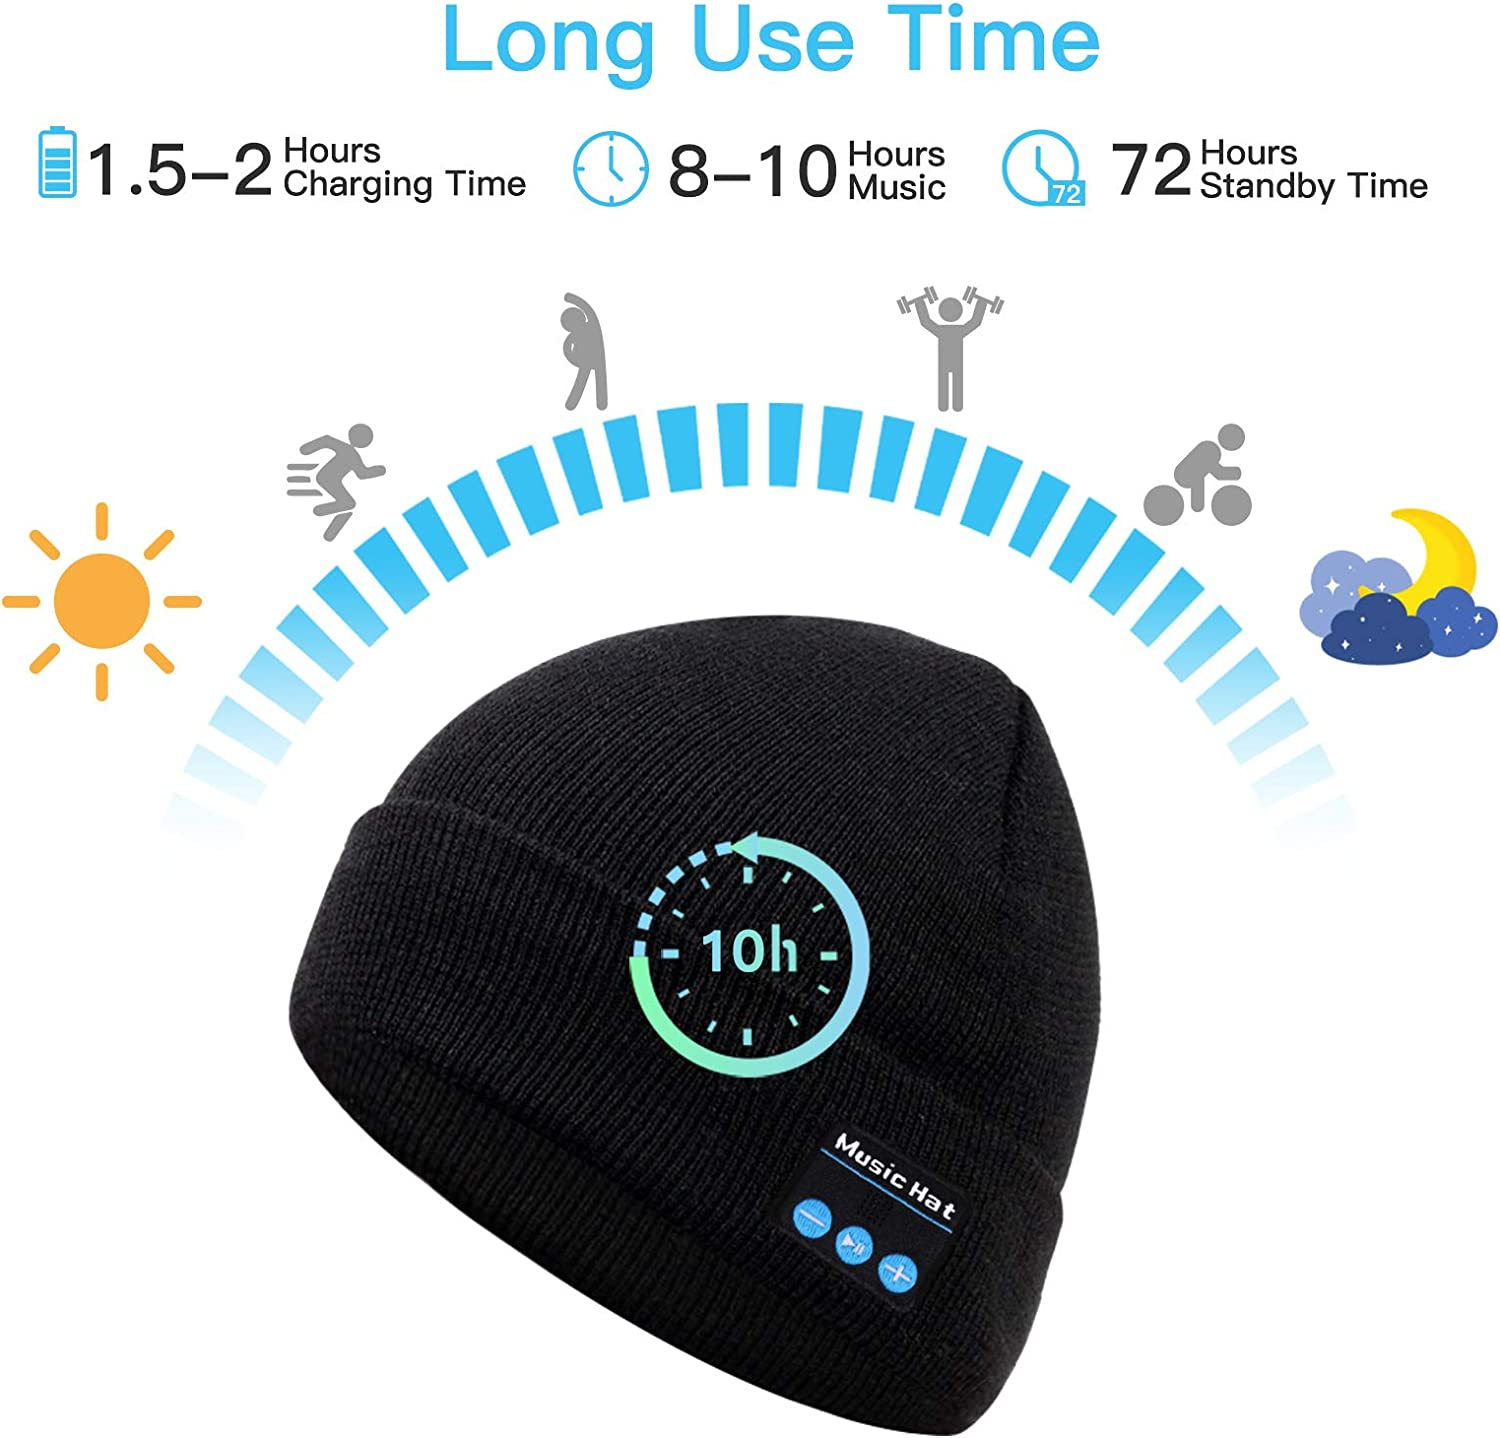 Bluetooth 5.0 Music Beanie, Xmas Gifts for Men Women, Warm Soft Bluetooth Beanie, Winter Knit Hat Cap with Built-in Mic, Stereo Speaker Headphones,Birthday Tech Fashion Gift